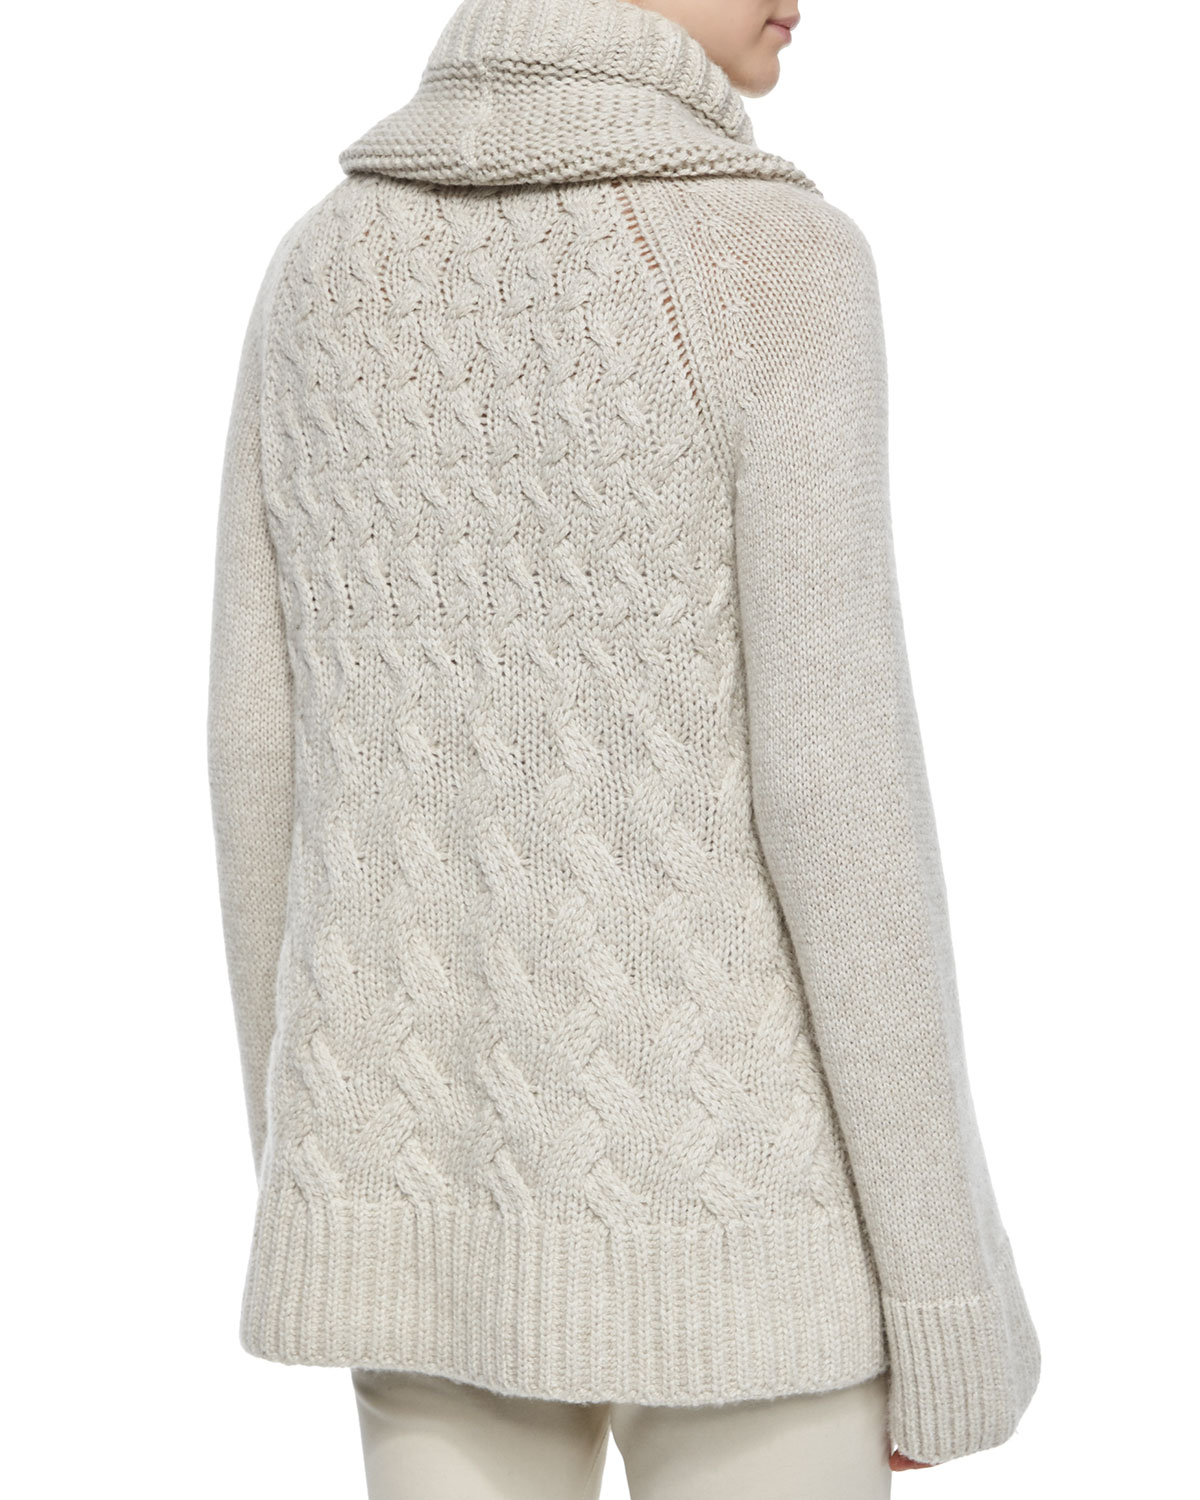 Loro piana Cashmere Chunky Cable-Knit Tunic Sweater in Natural | Lyst